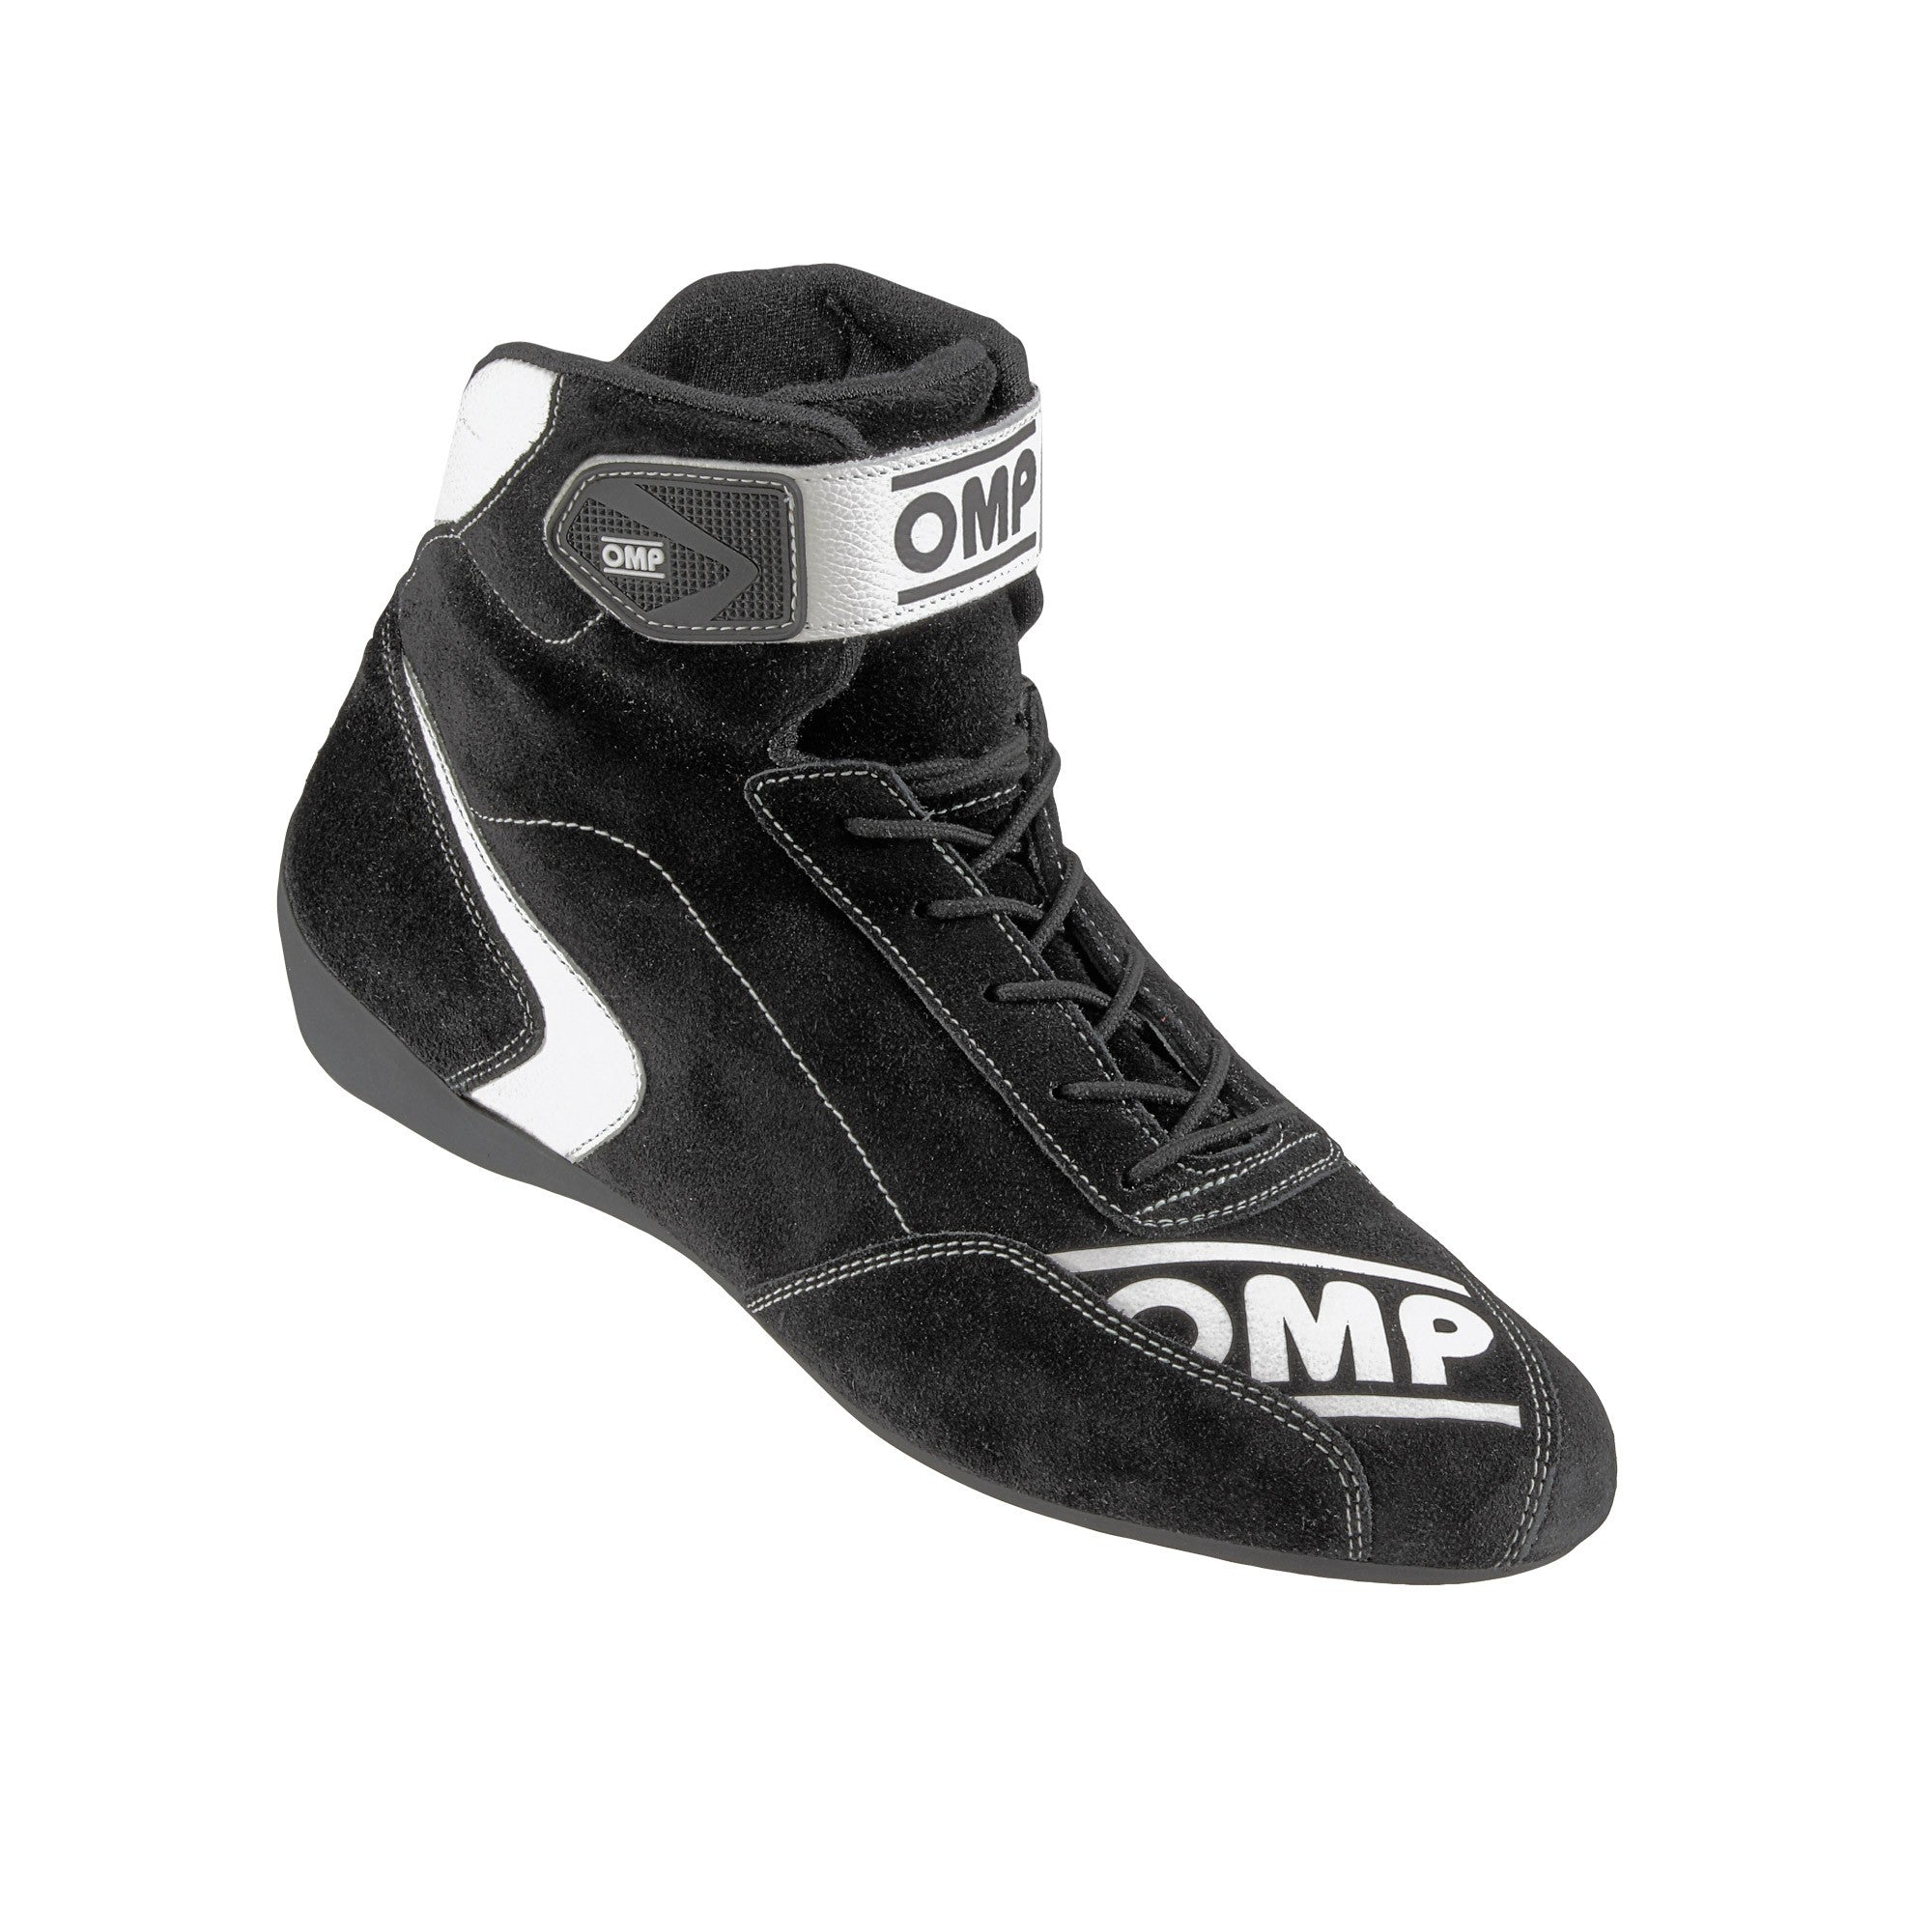 OMP RACING SHOE FIRST S VV